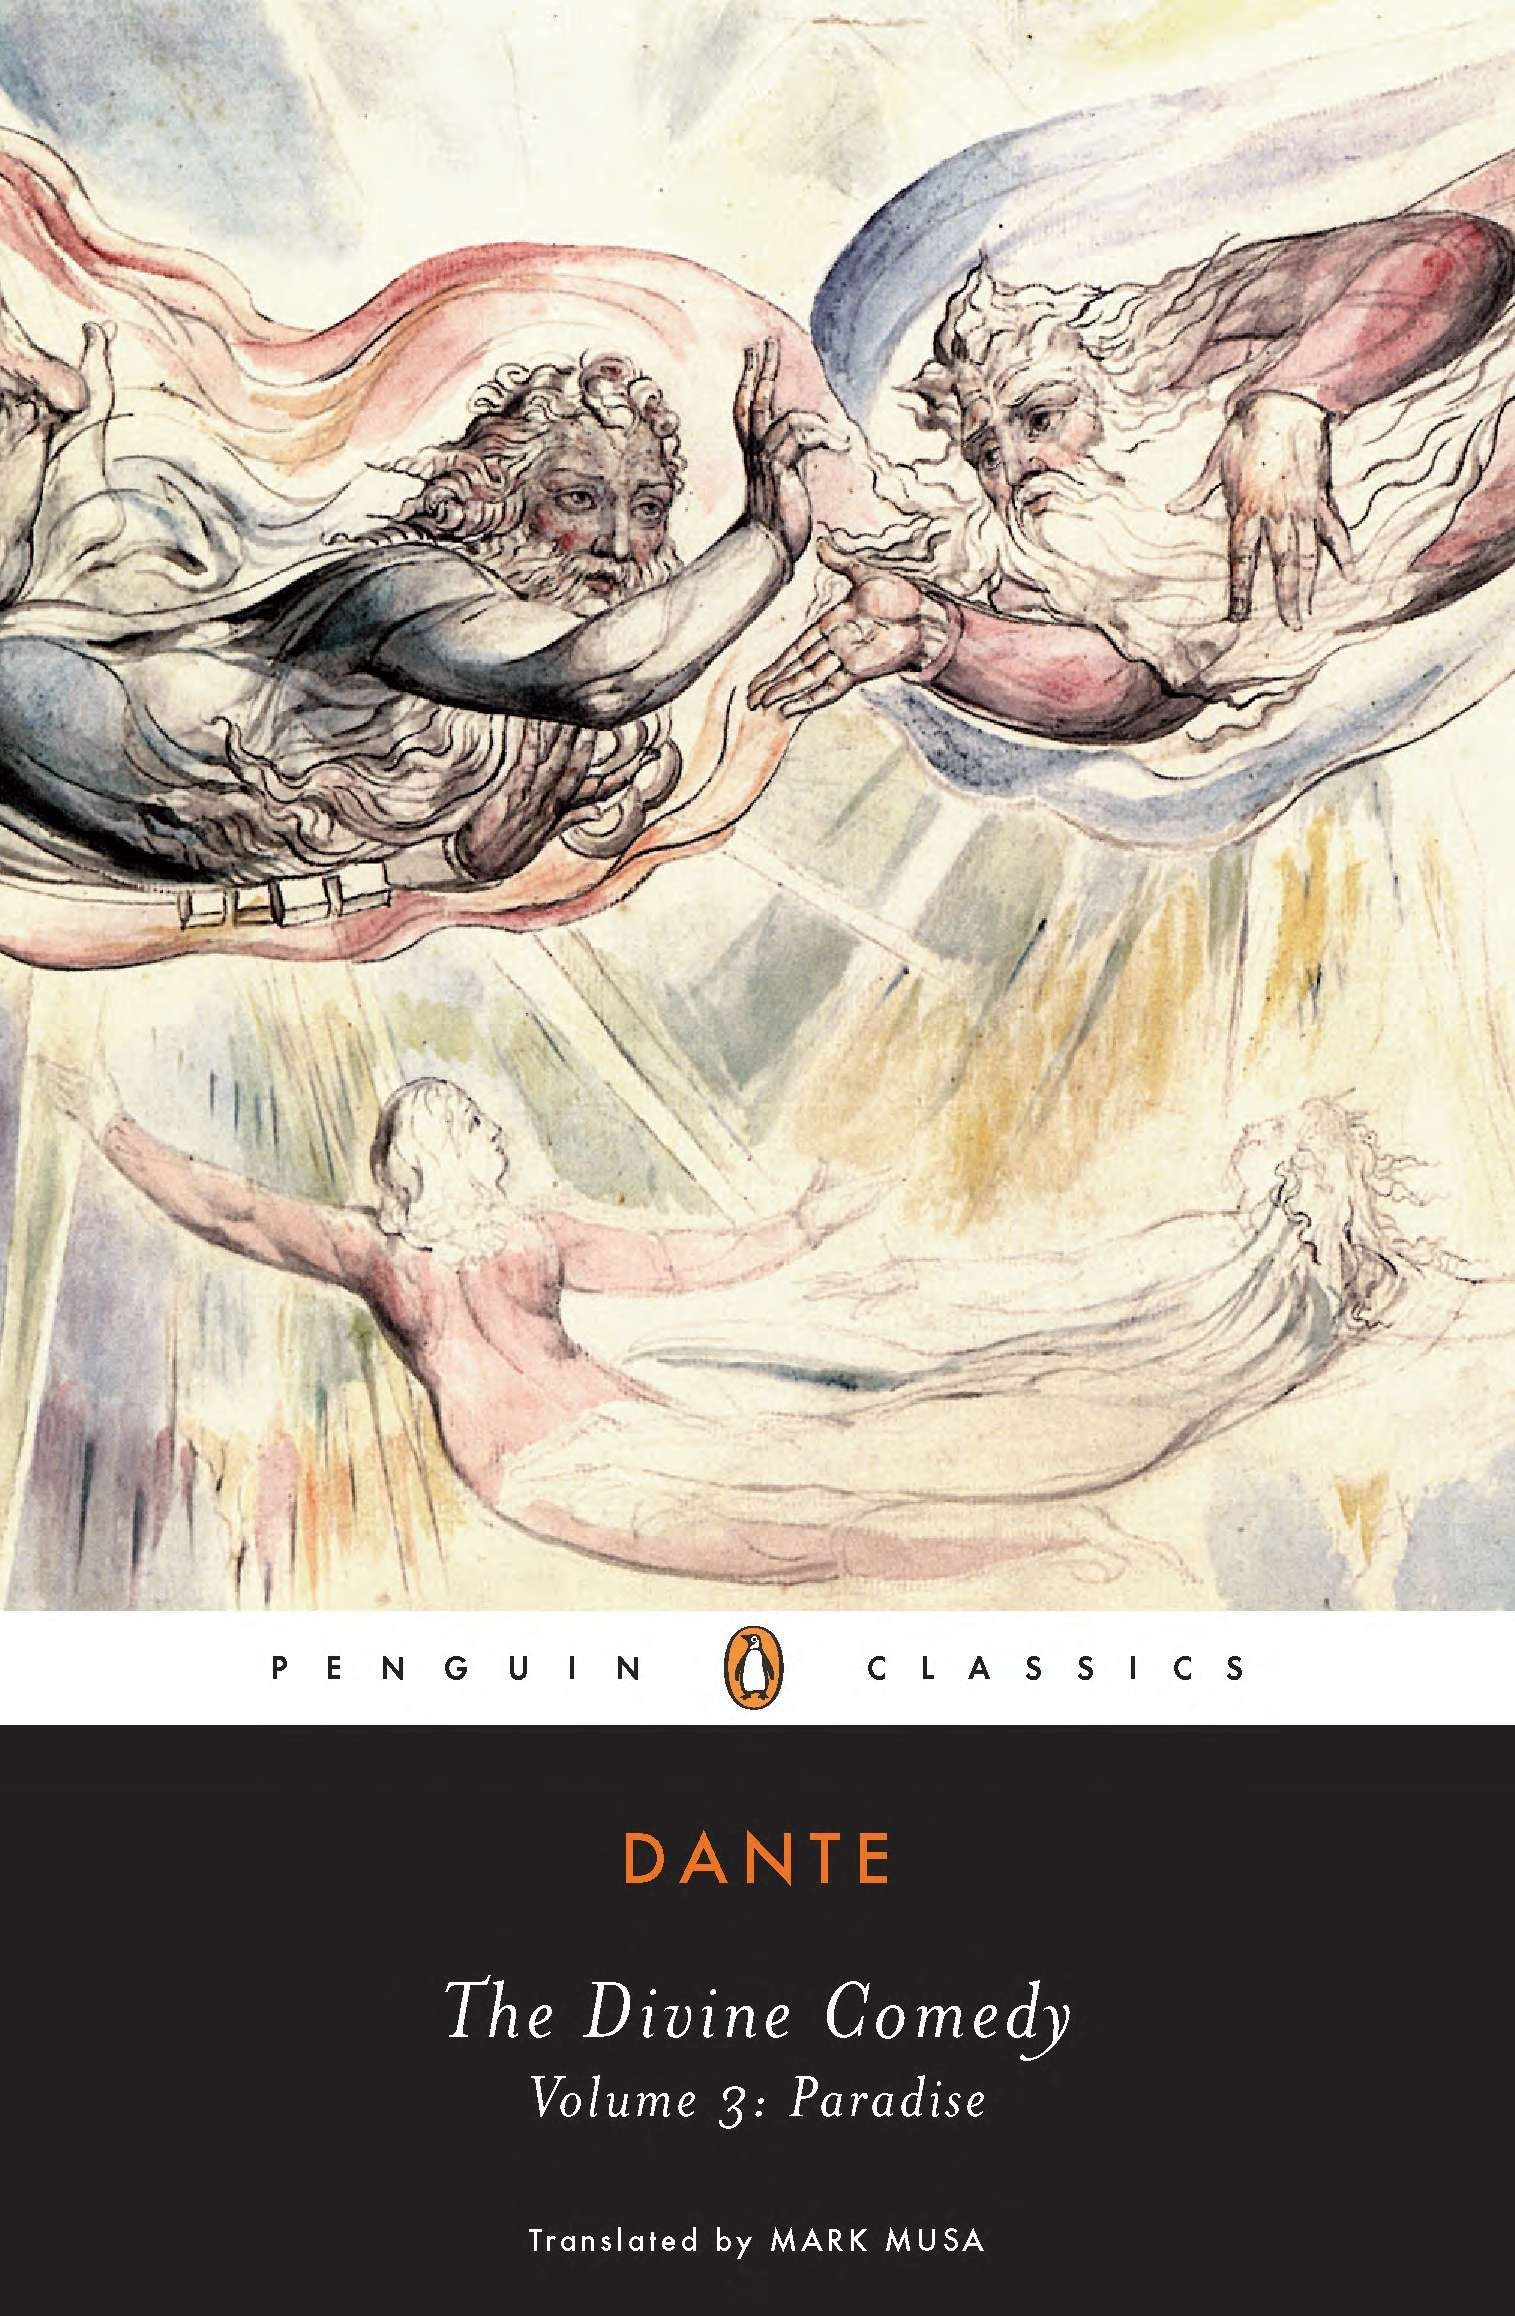 The Divine Comedy, Vol. 3: Paradise by Penguin Books